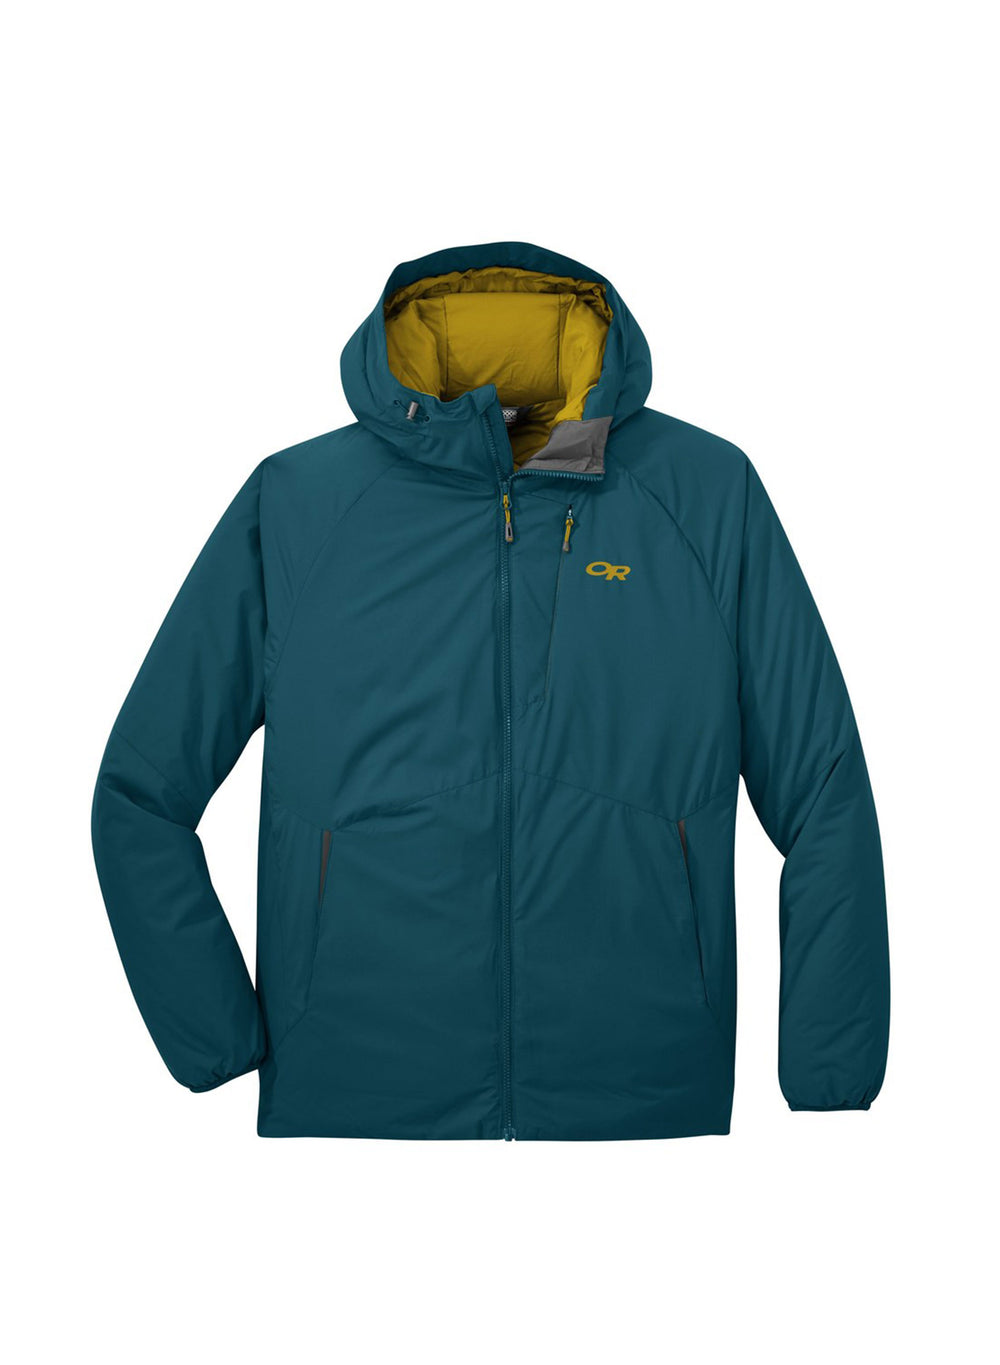 Outdoor Research Refuge Hooded Jacket - Men's